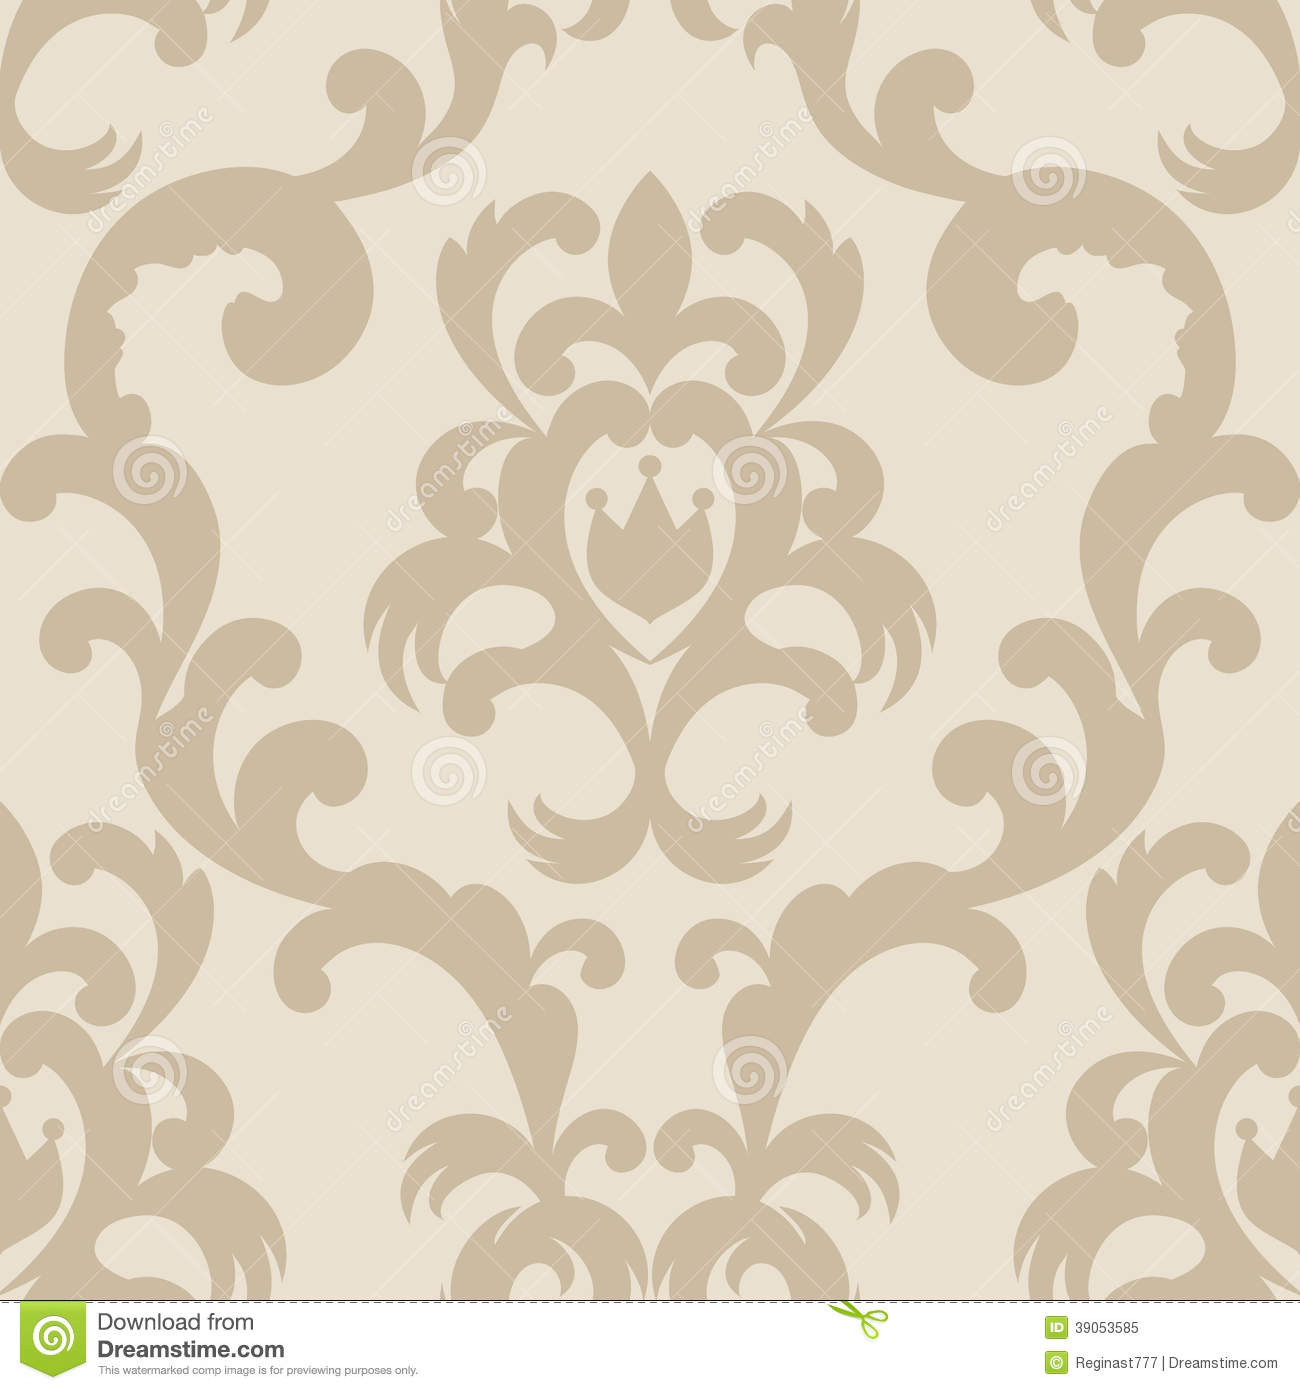 French Wallpaper Designs French Wallpaper